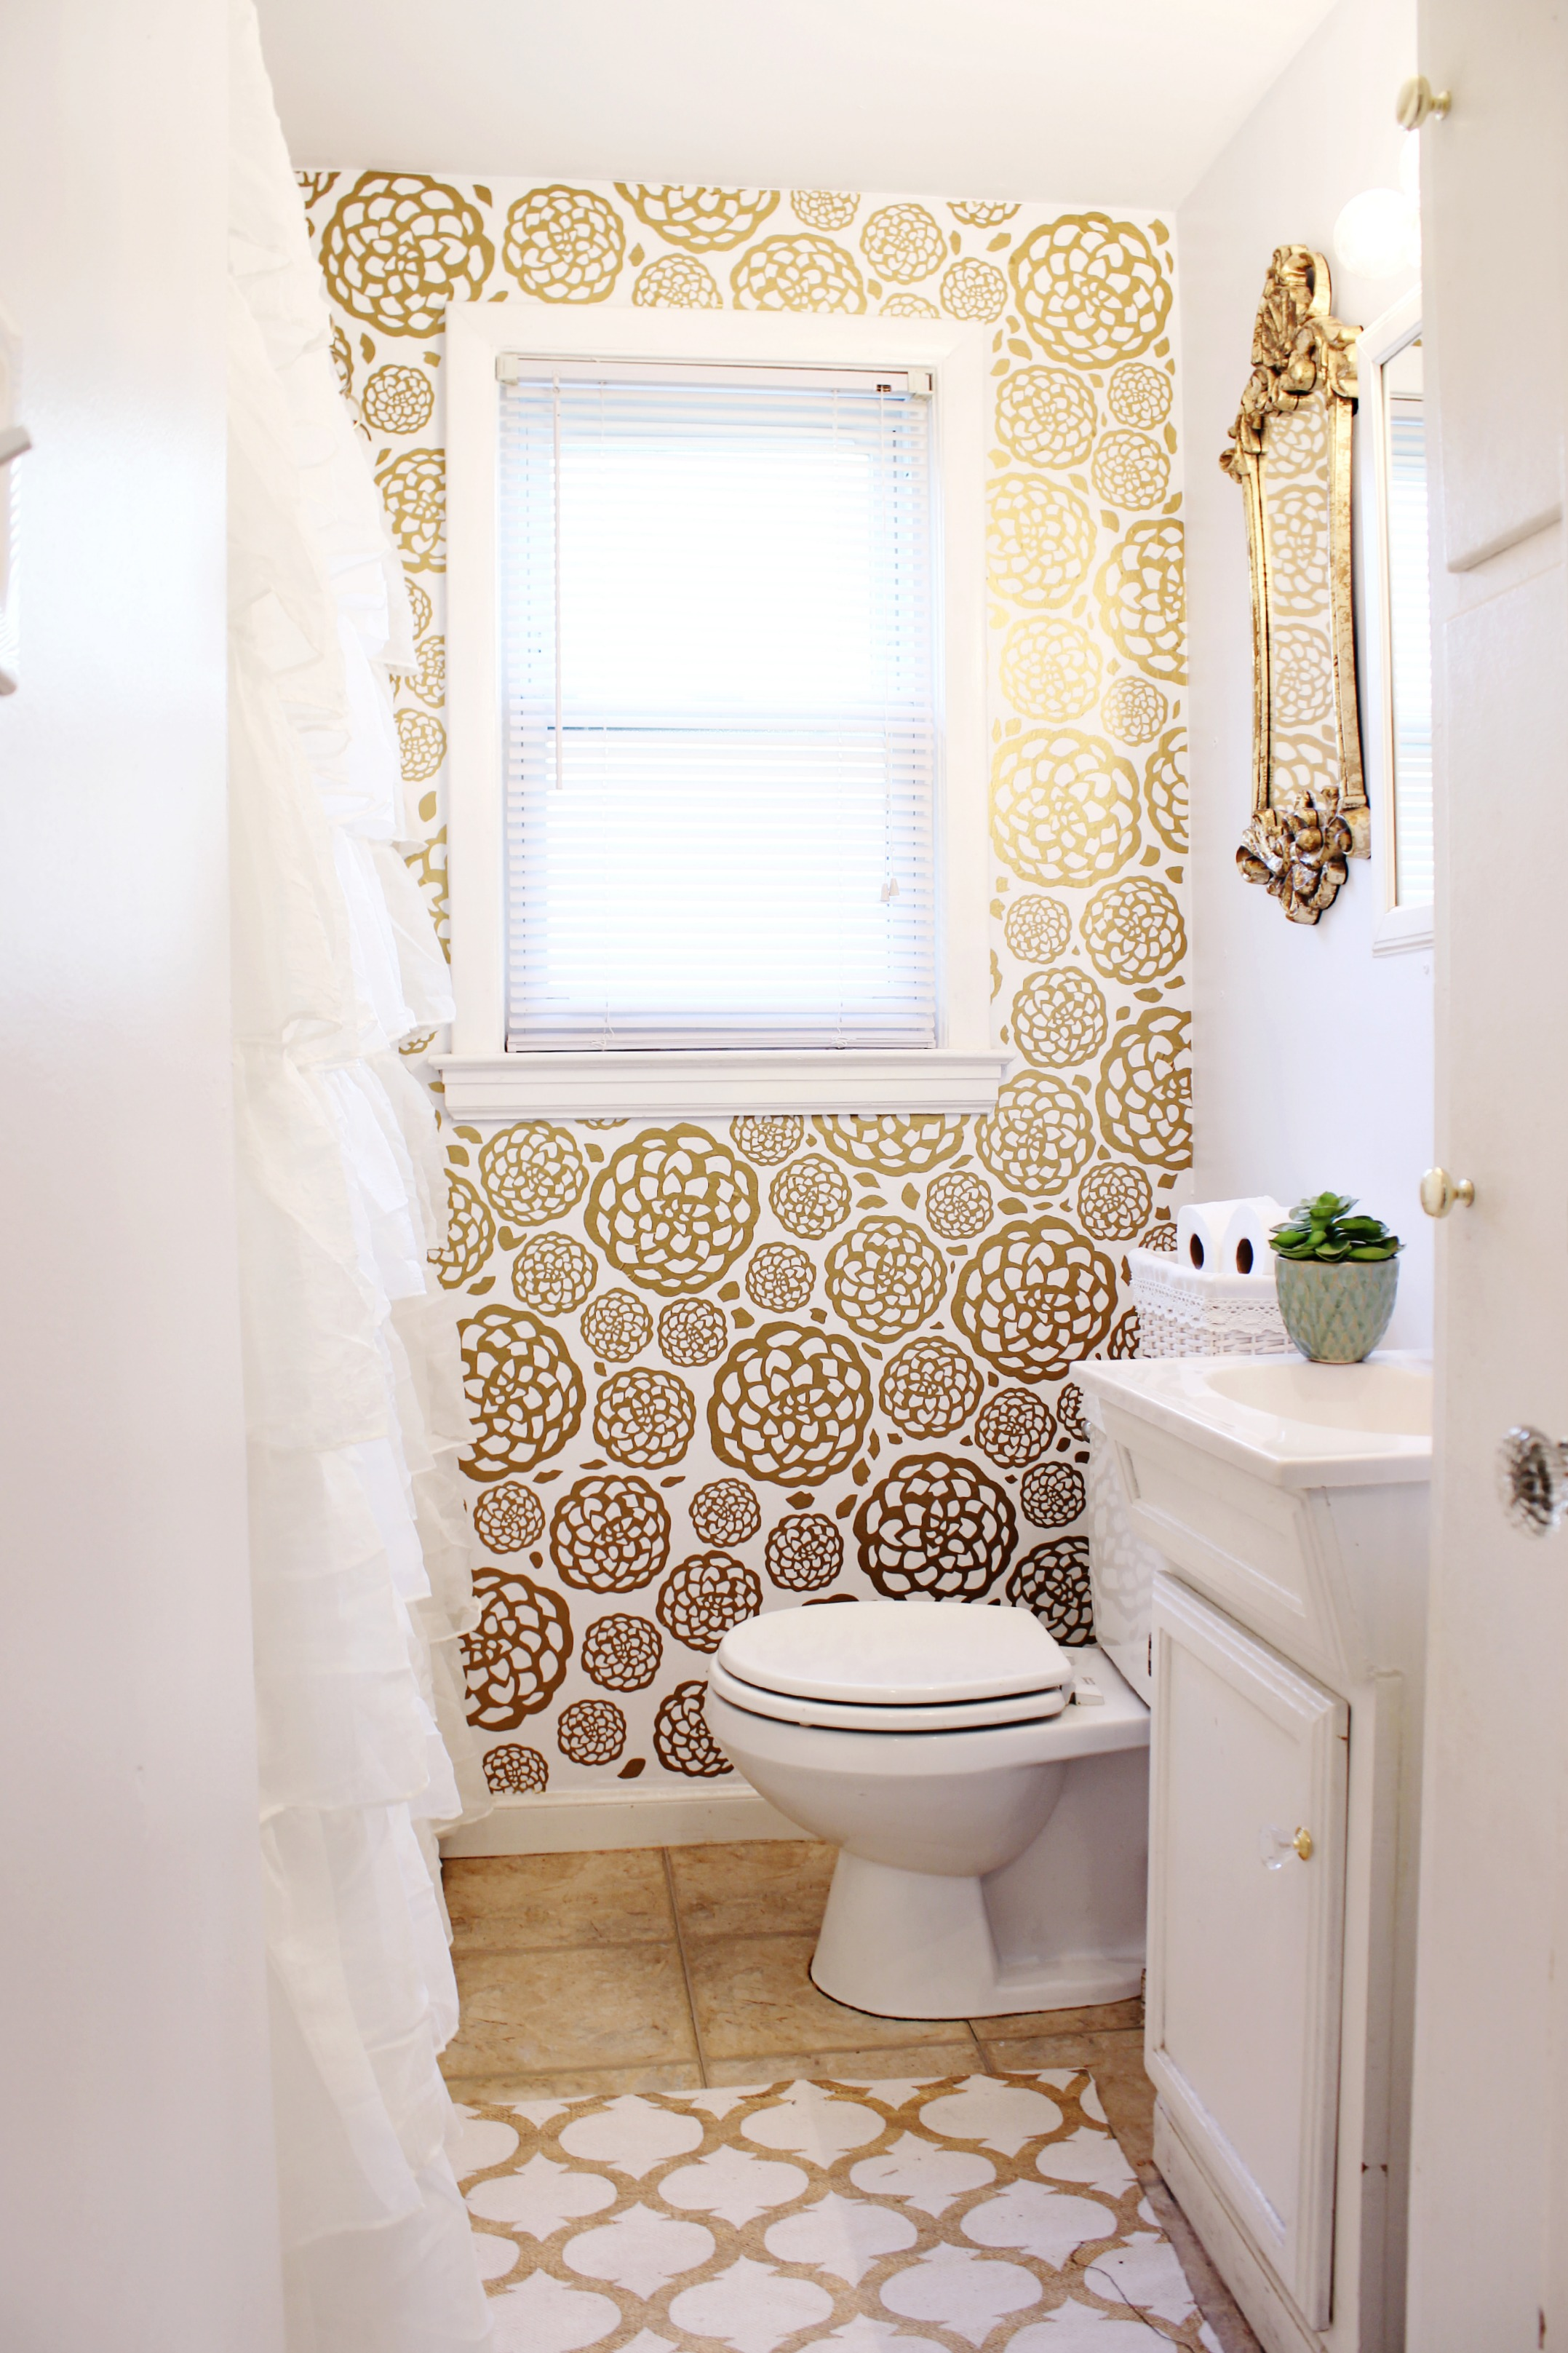 Bathroom makeover 1 classy How to organize bathroom